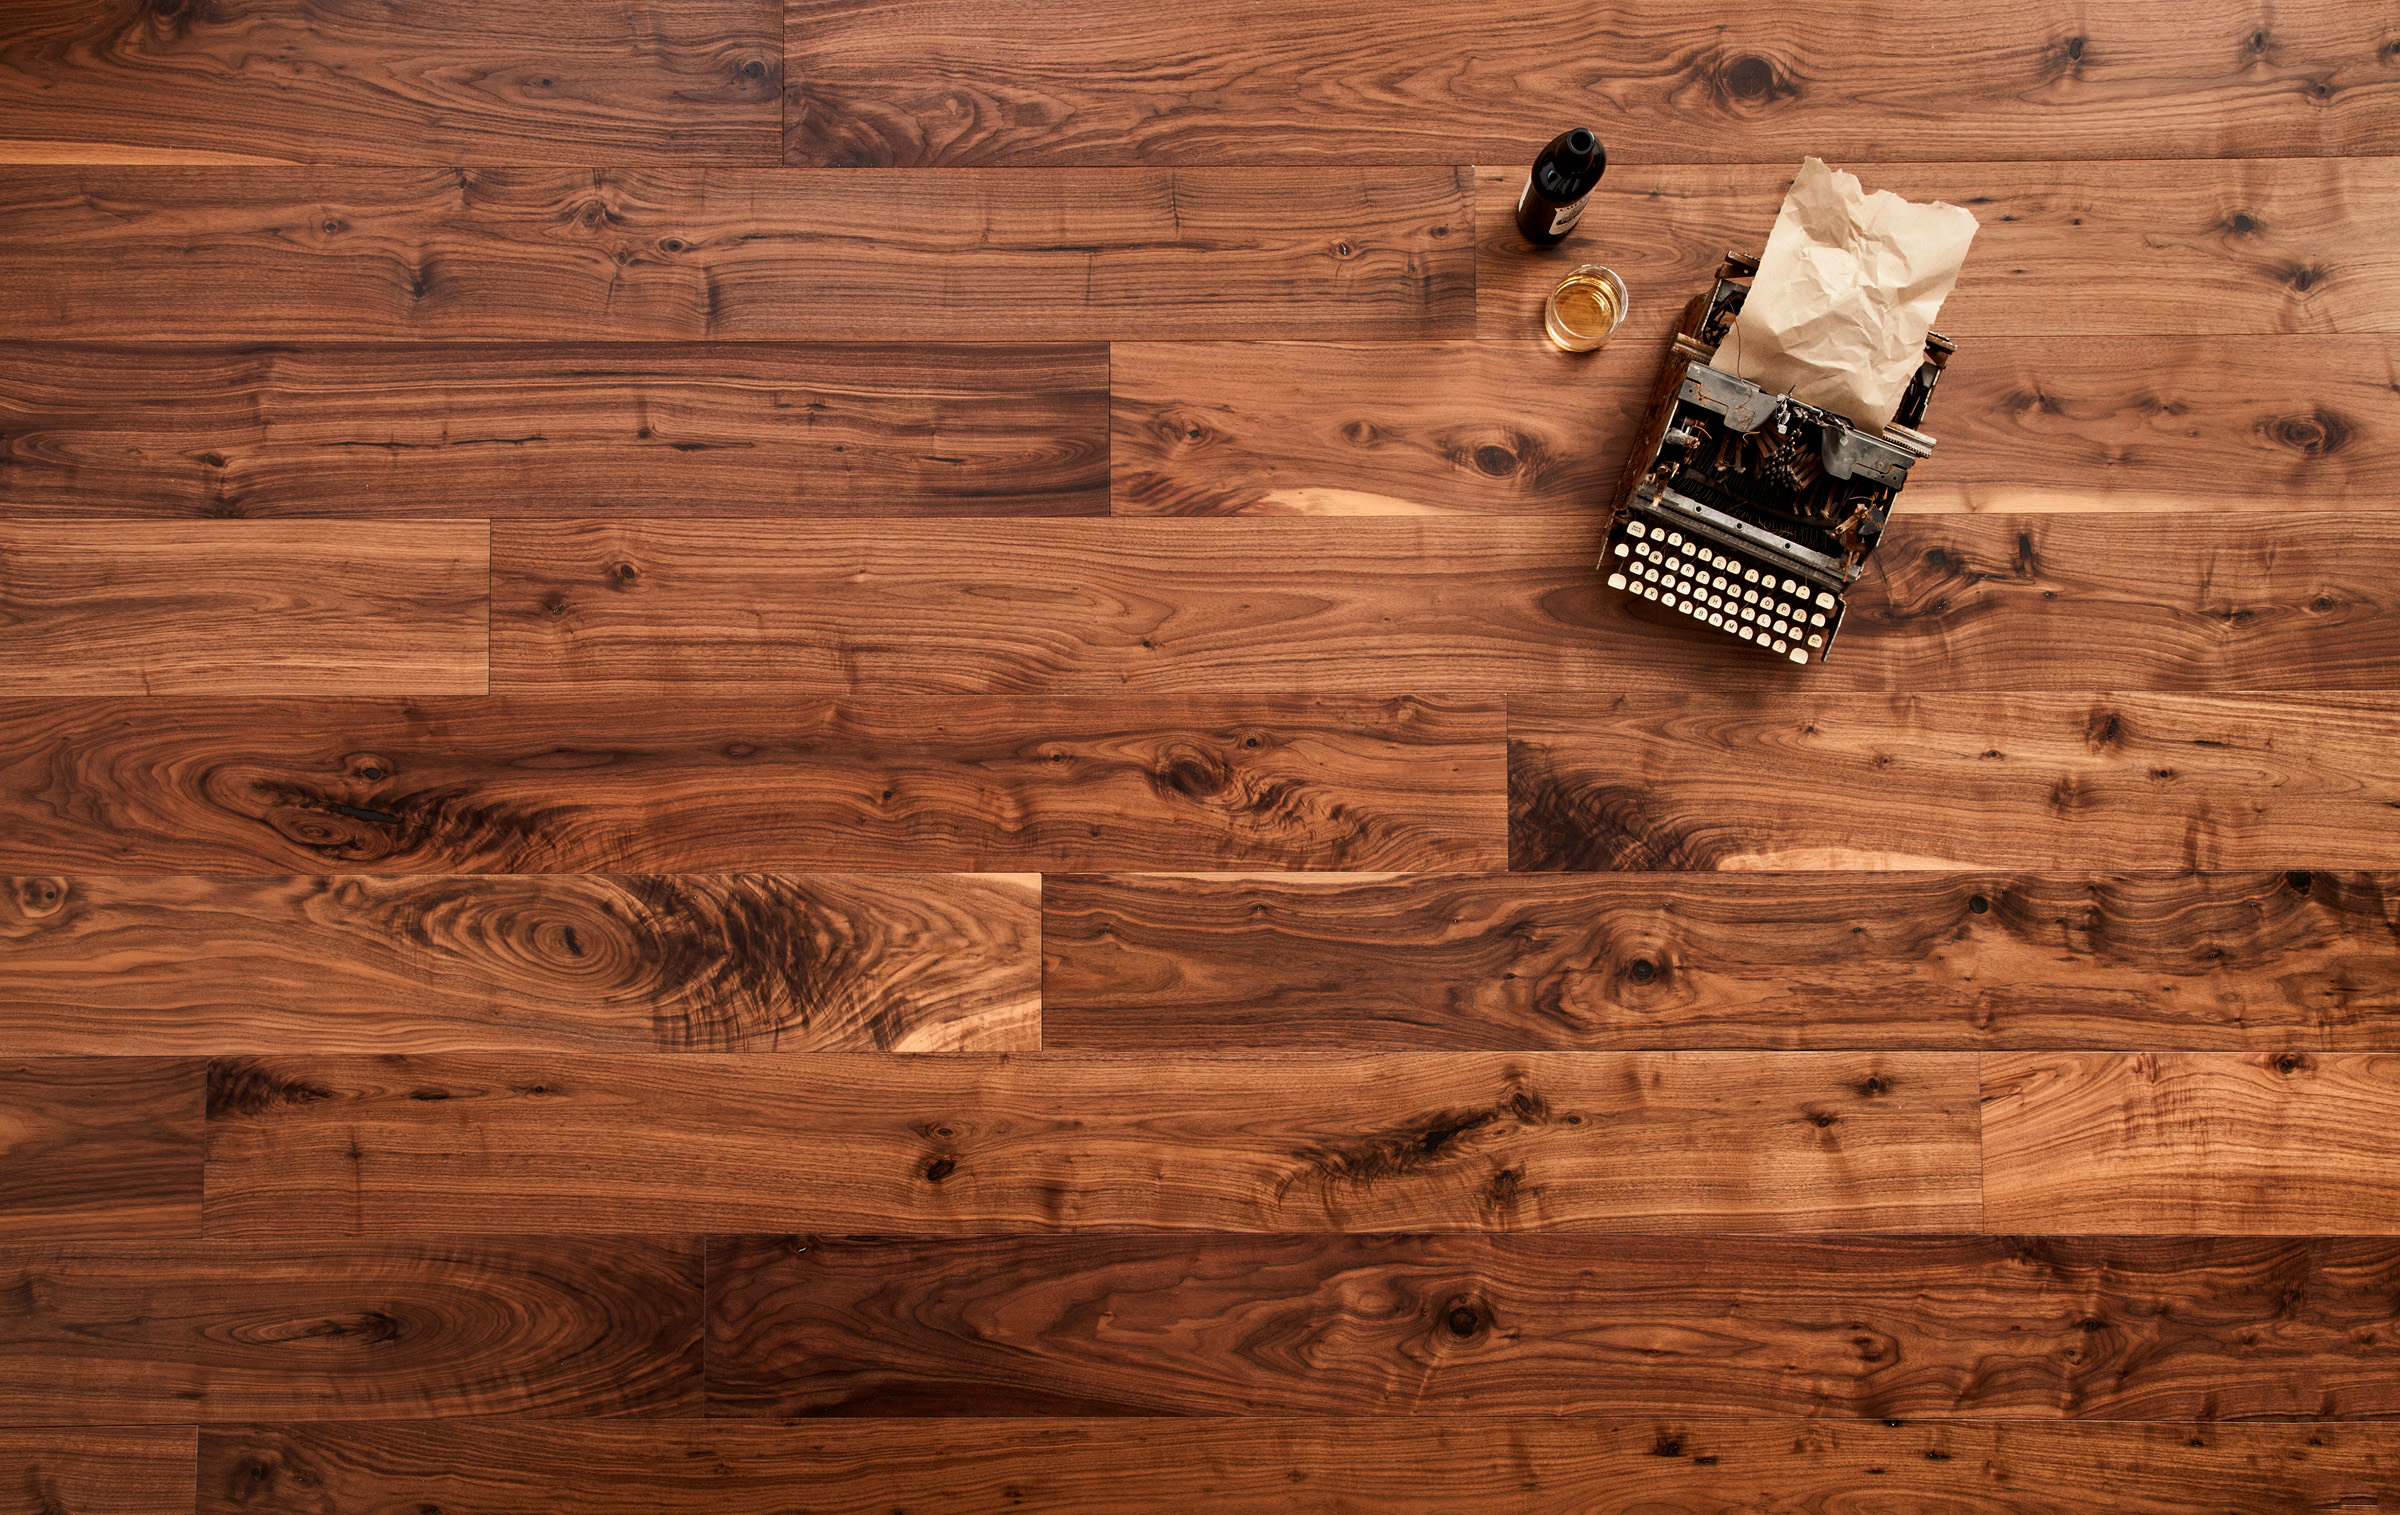 M A D E R A Simply Wood Floors Designed By Naturerust